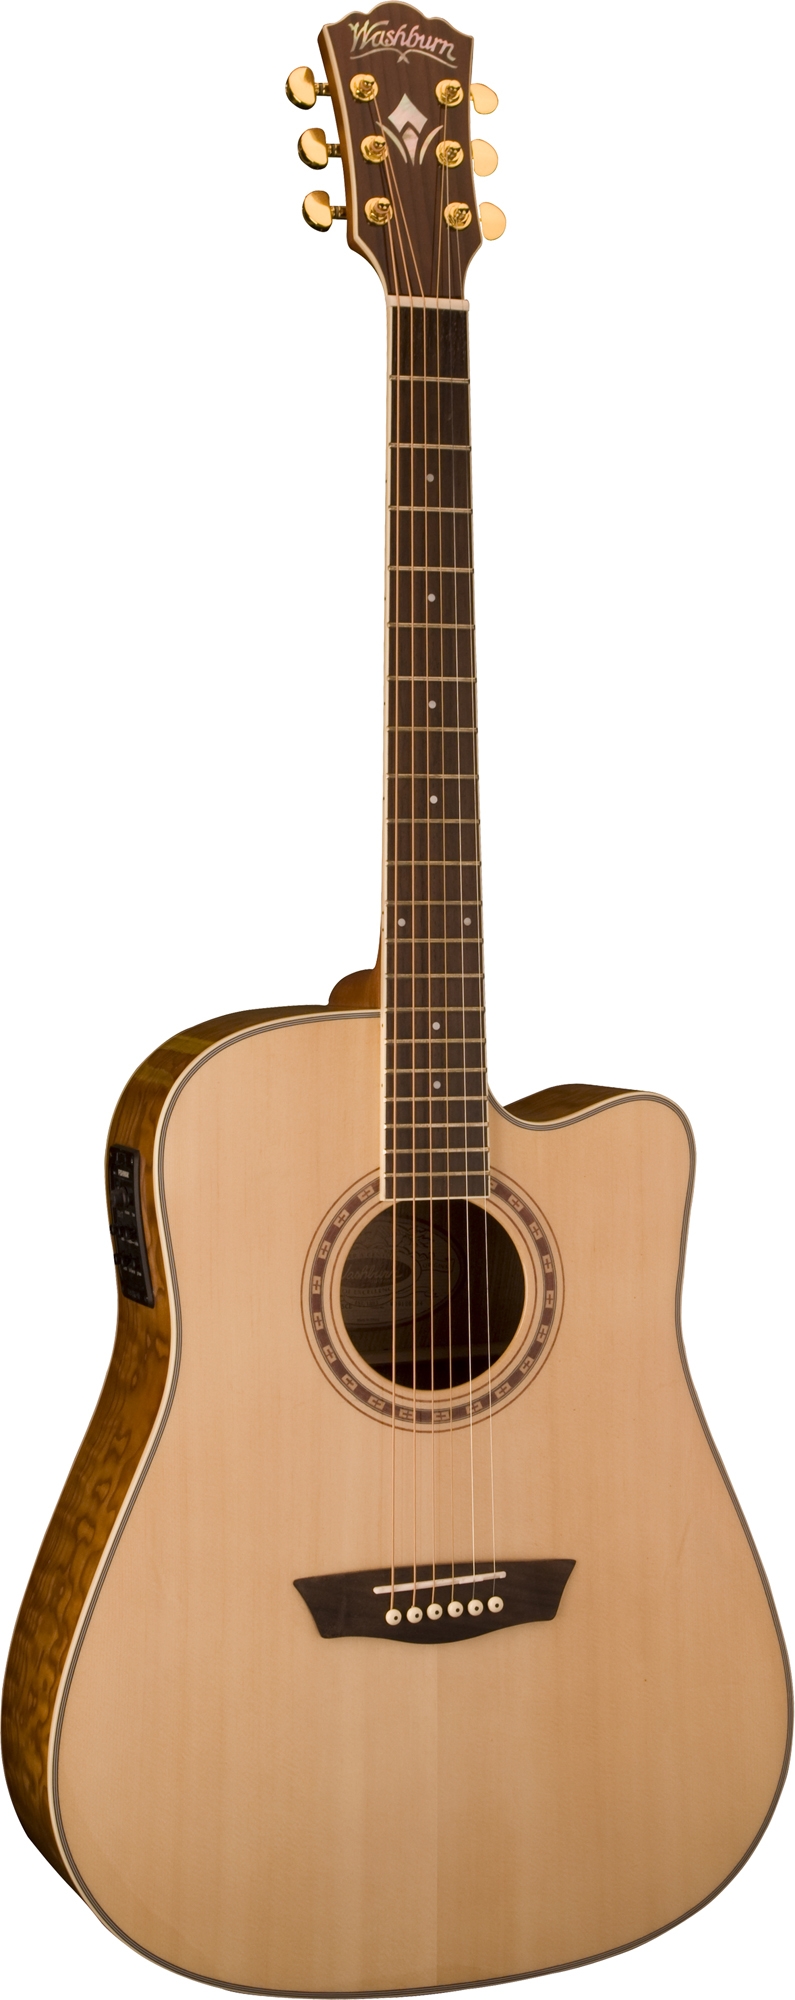 washburn wd30sce acoustic dreadnought cutaway style guitar with preamp tuner sys was12 wd30sce. Black Bedroom Furniture Sets. Home Design Ideas